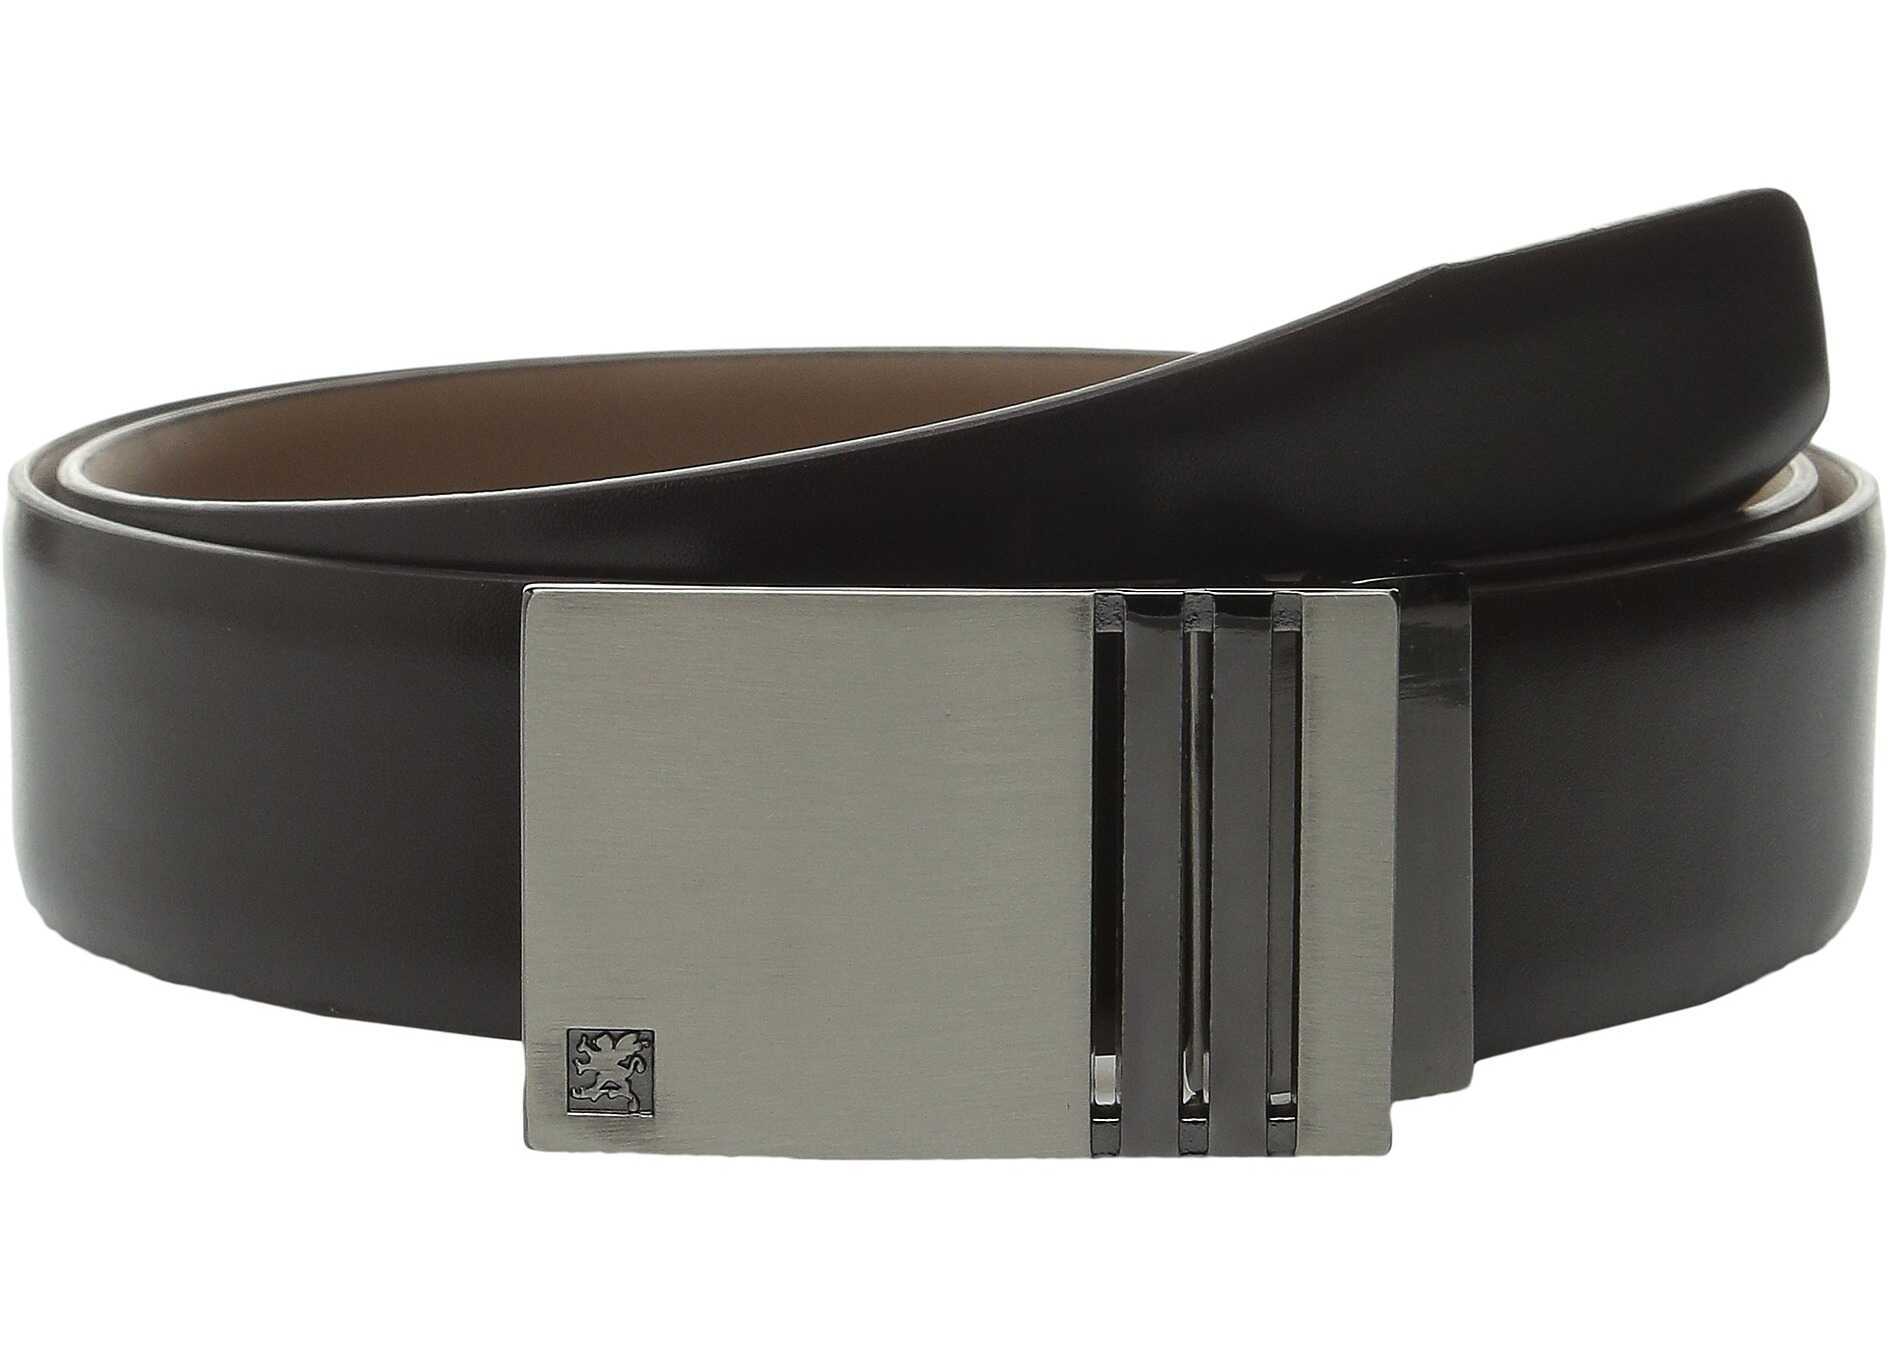 Stacy Adams Plague Buckle Belt Brown